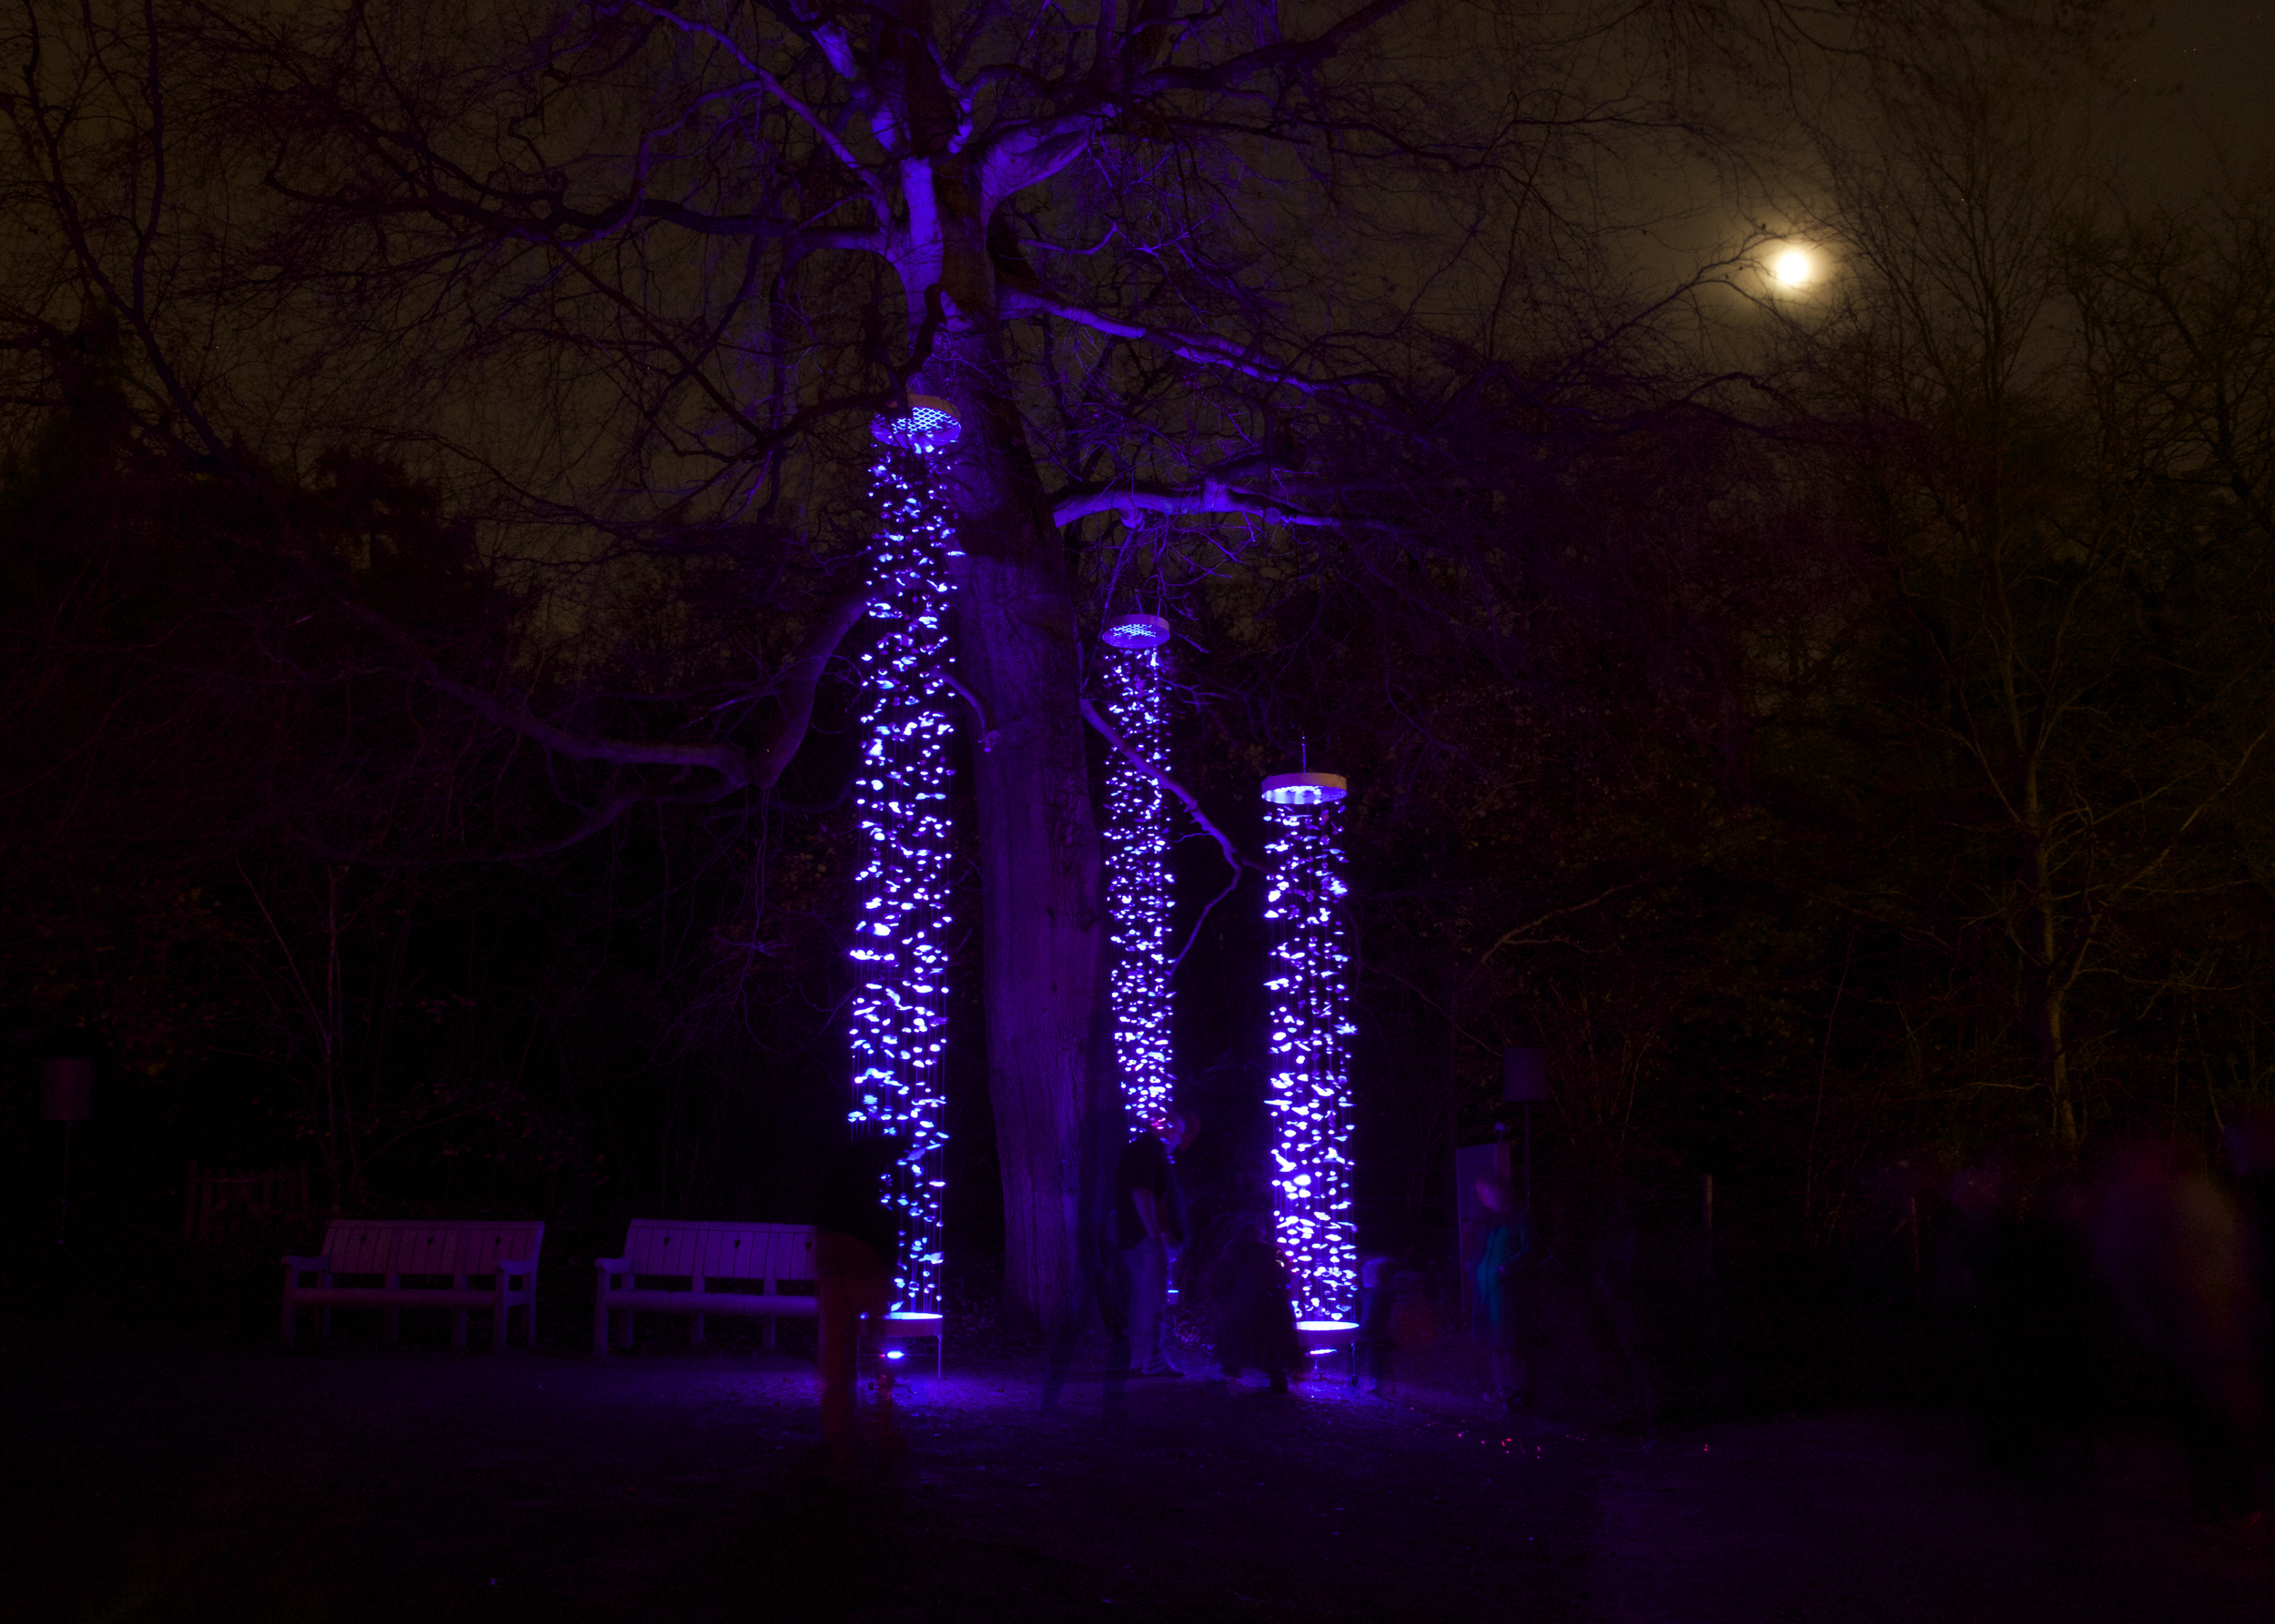 Supernature; a sculptural porcelain light installation and soundscape celebrating the London 2012 Olympics.